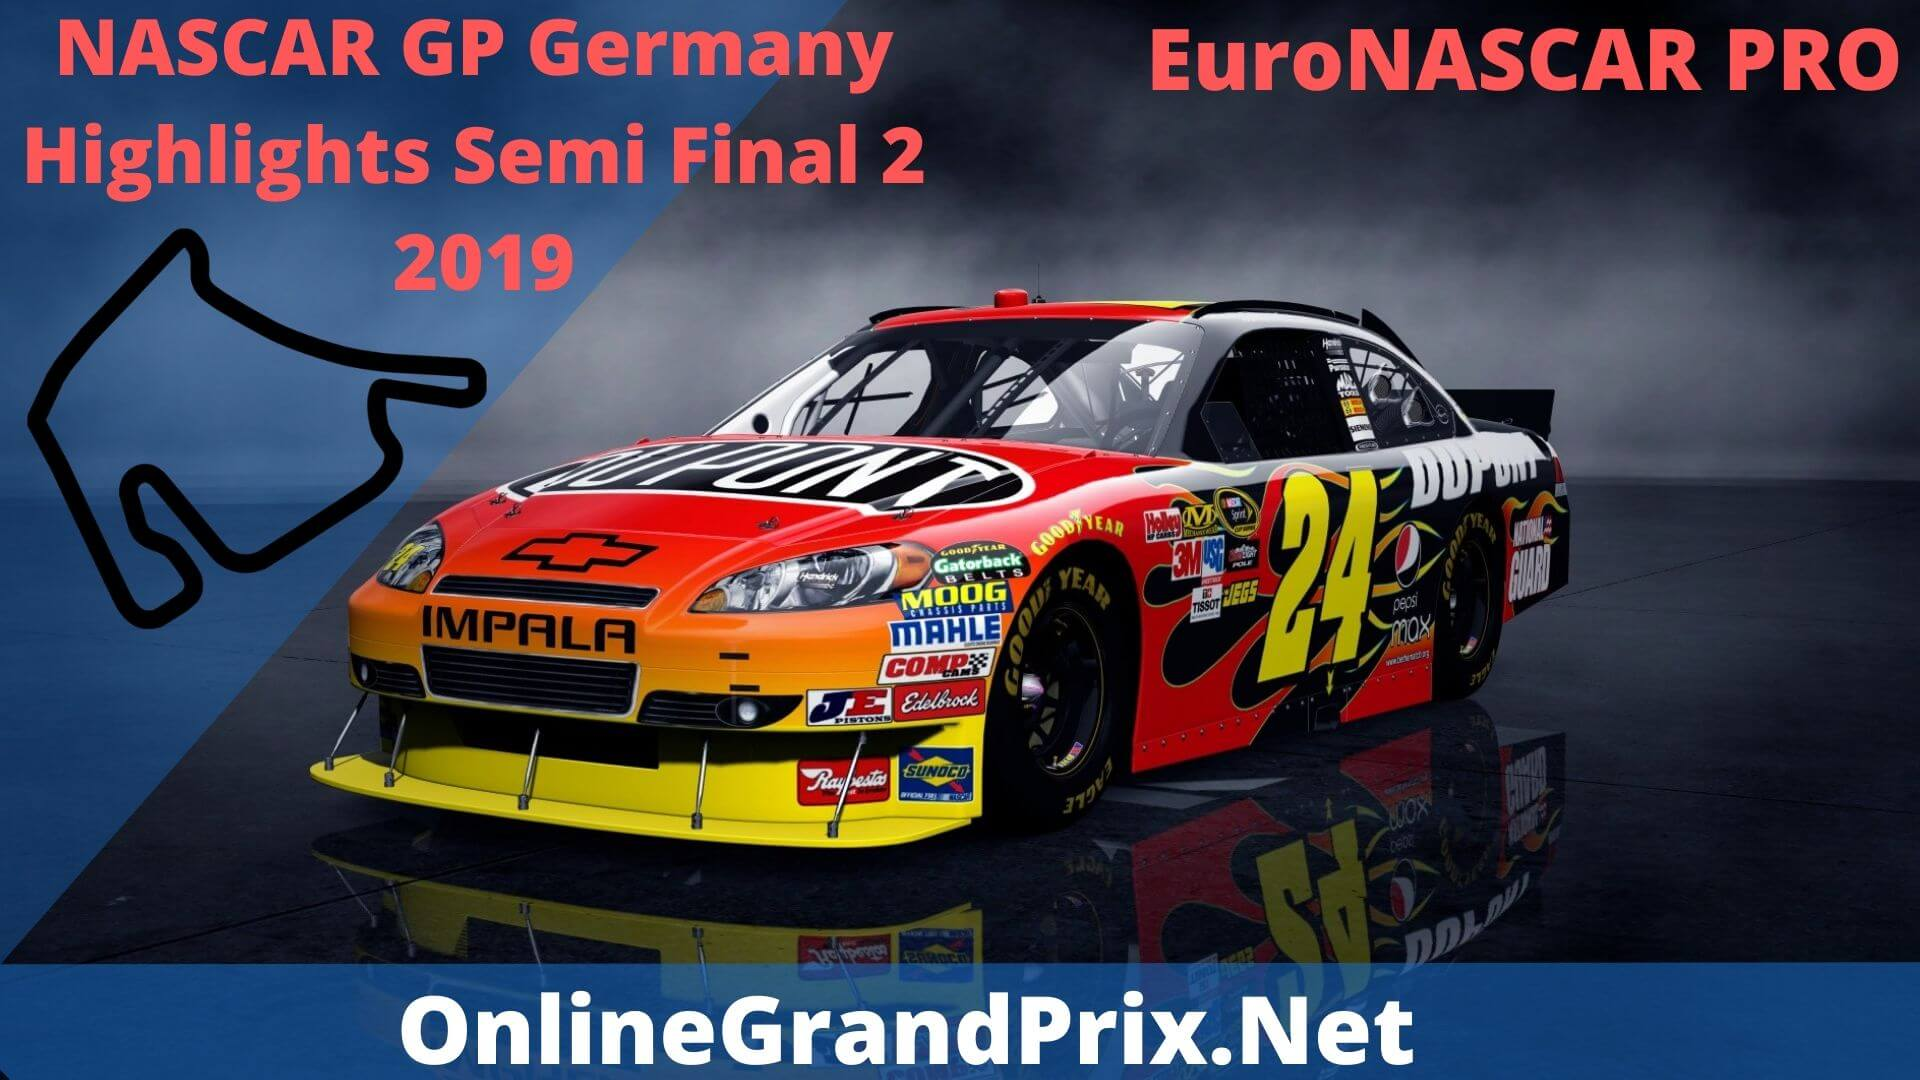 NASCAR GP Germany Semi Final 2 Highlights 2019